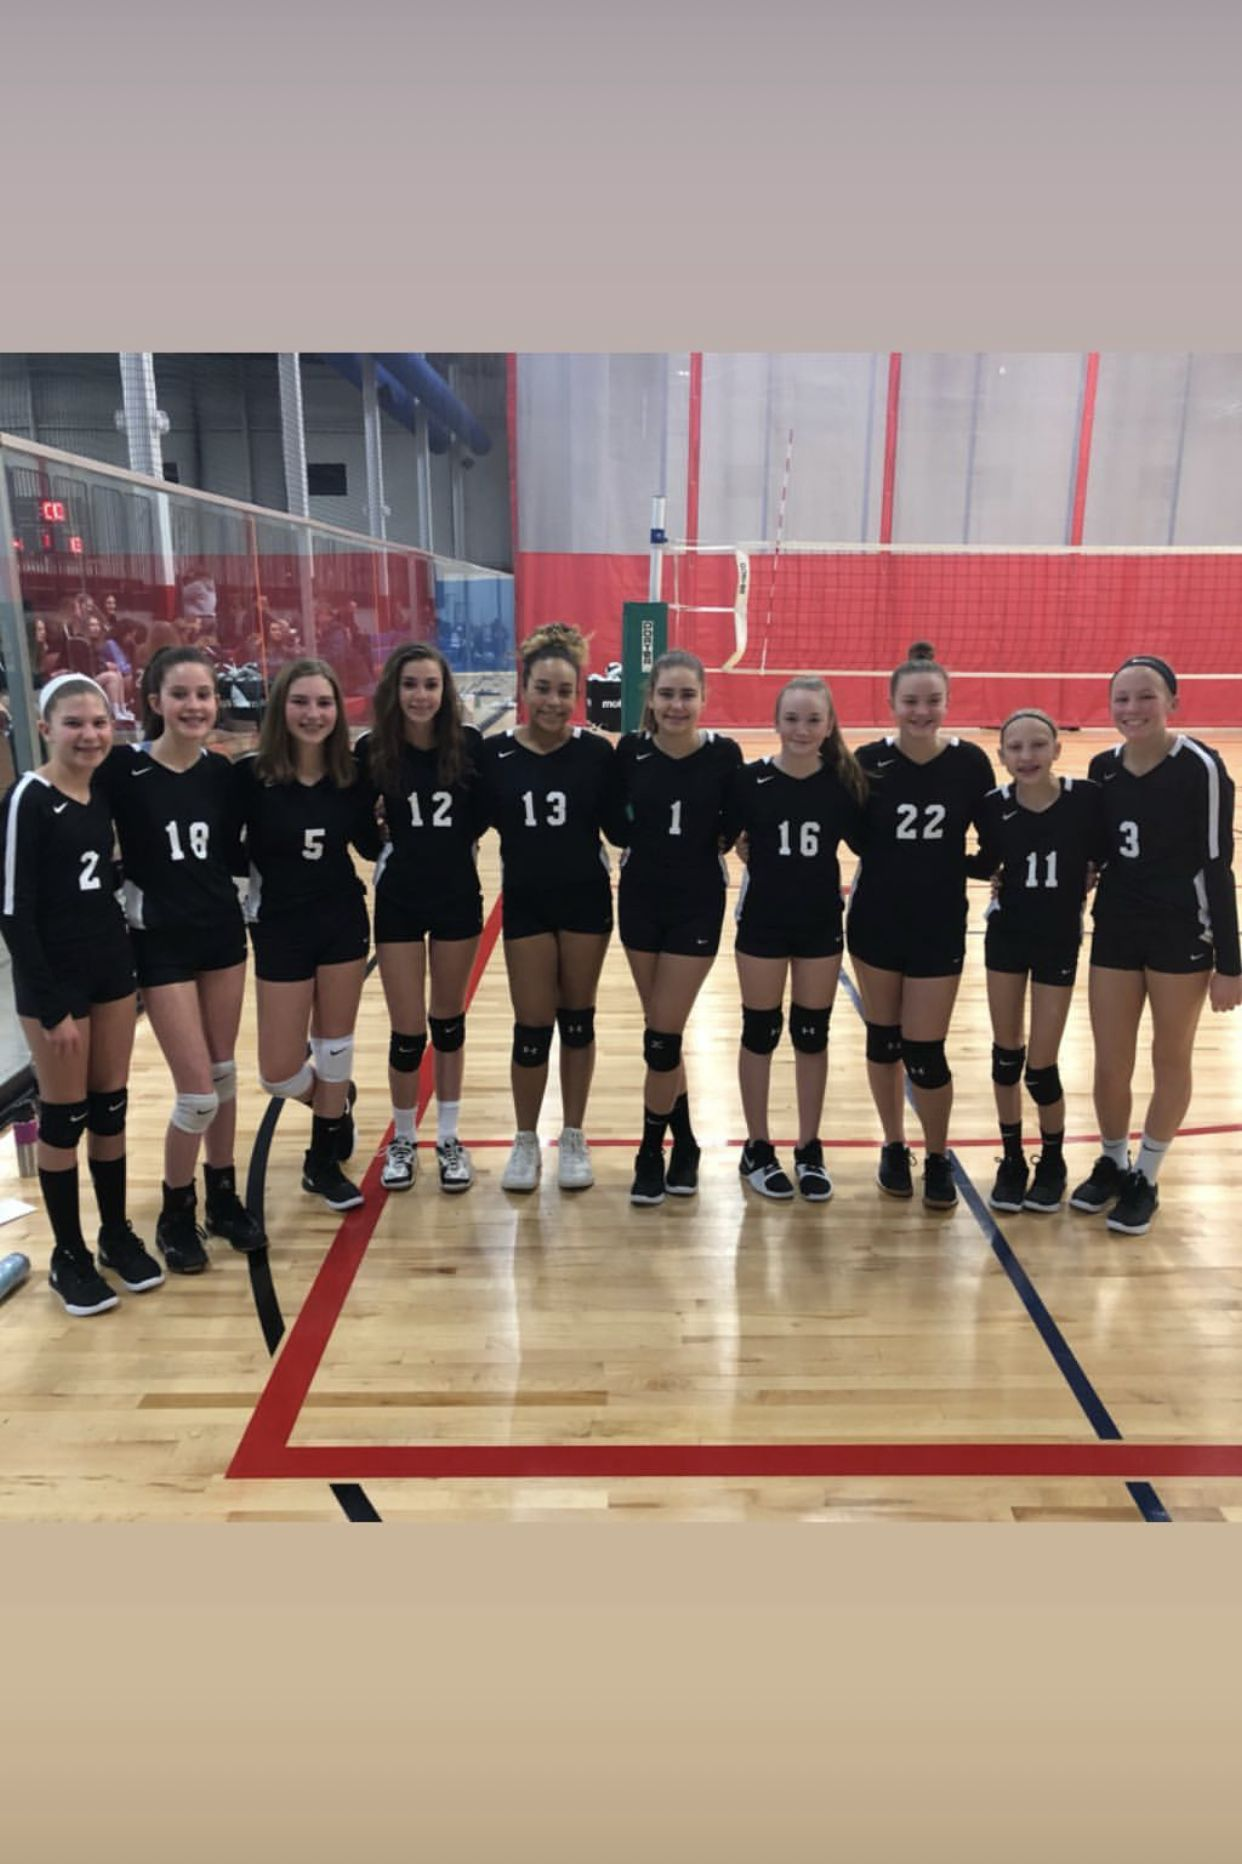 Pin By Angel Riveldt On Volleyball Volleyball Team Volleyball Volley